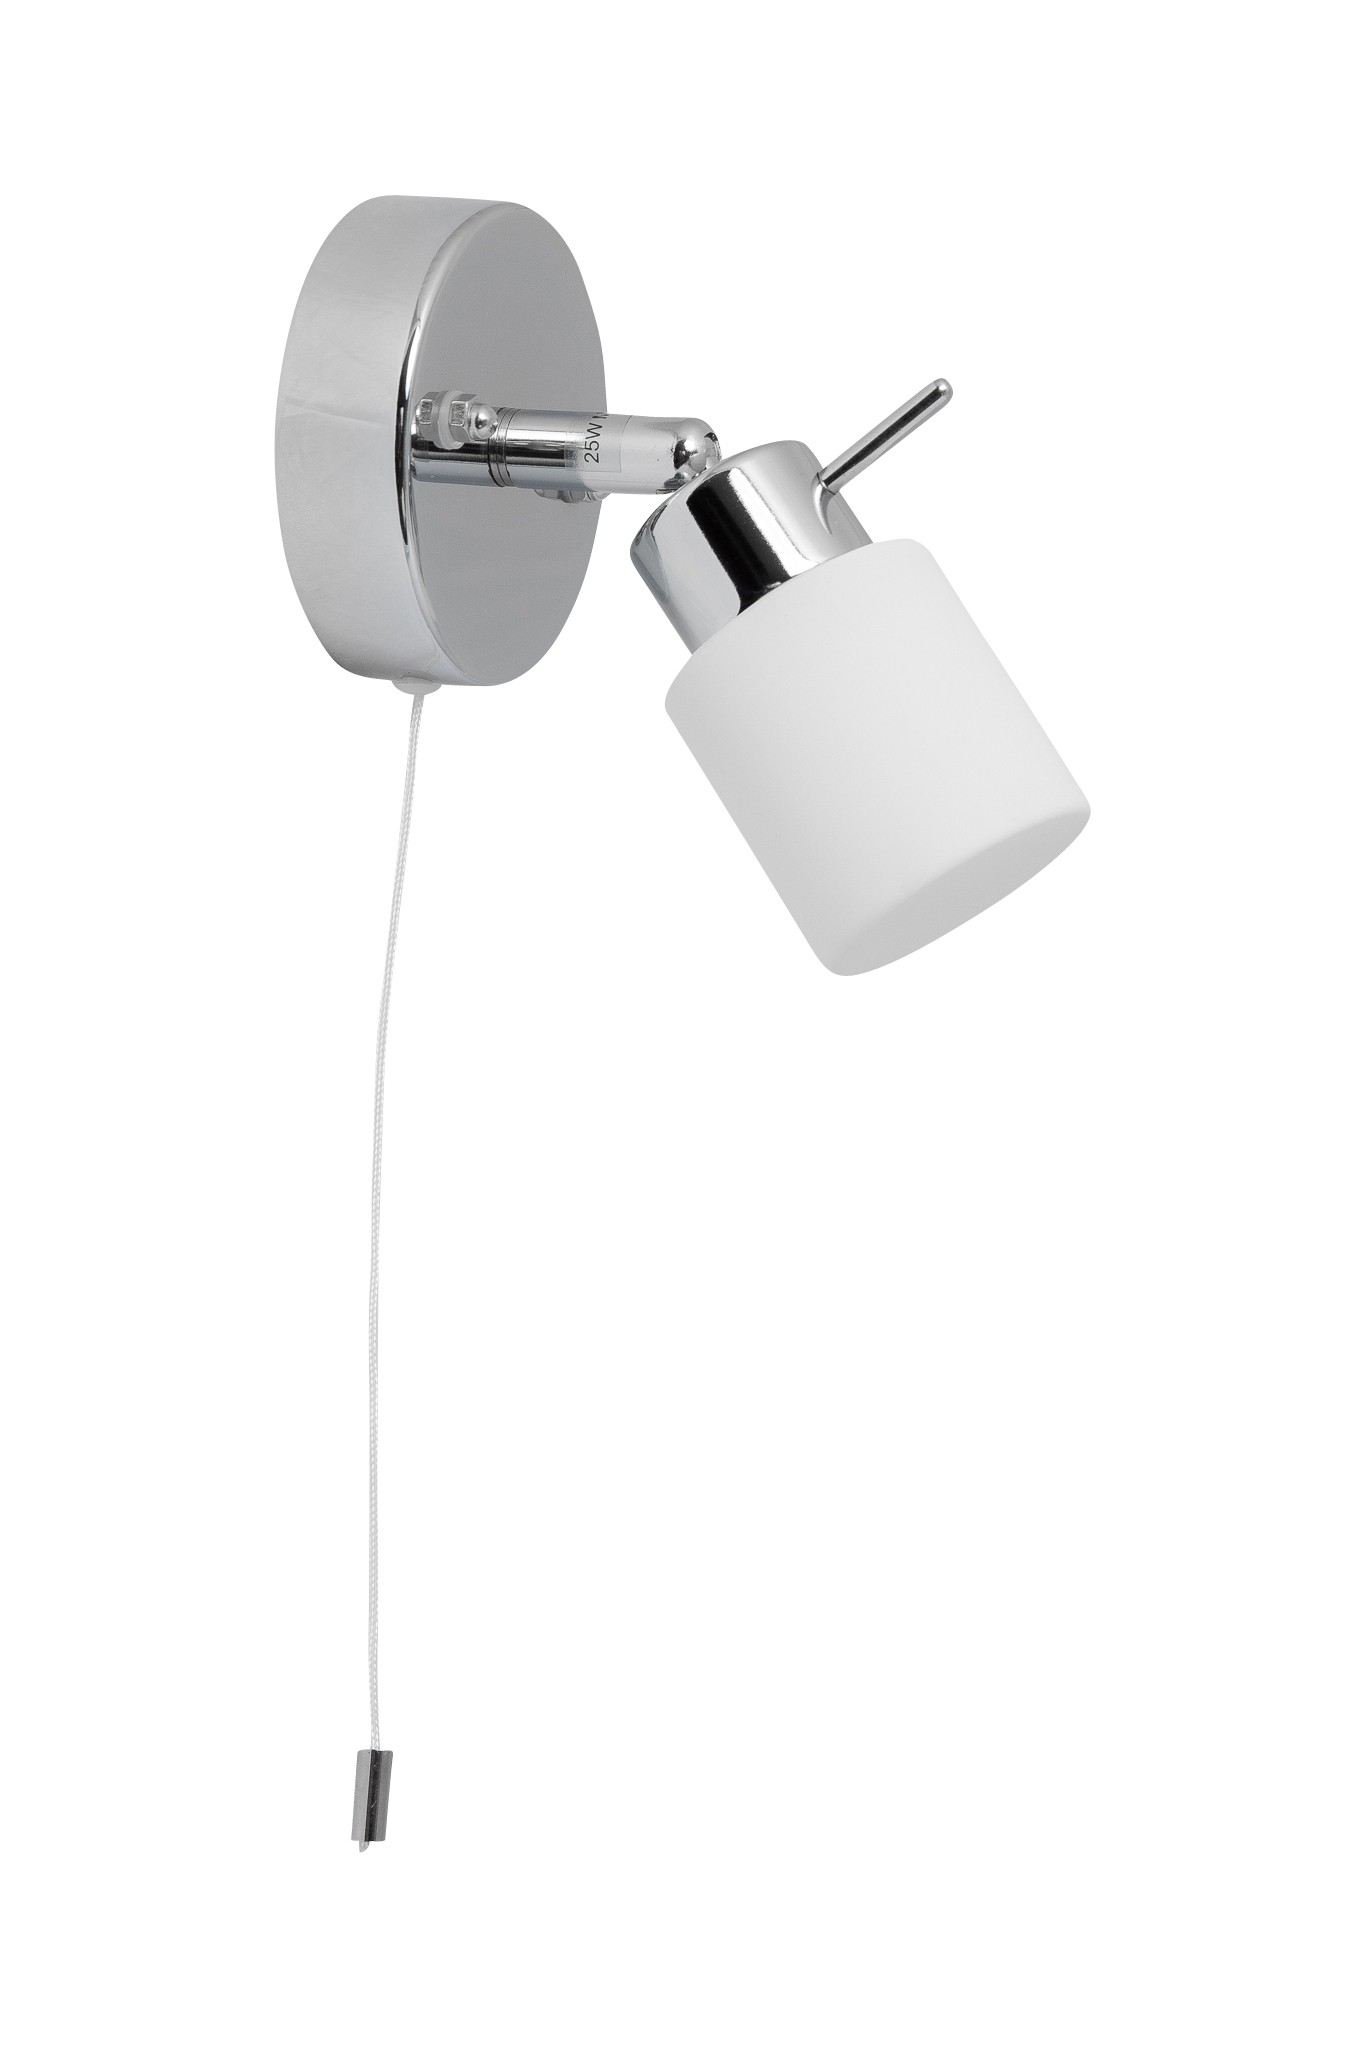 Polished Chrome 25w Bathroom Wall Light With Pull Cord Switch